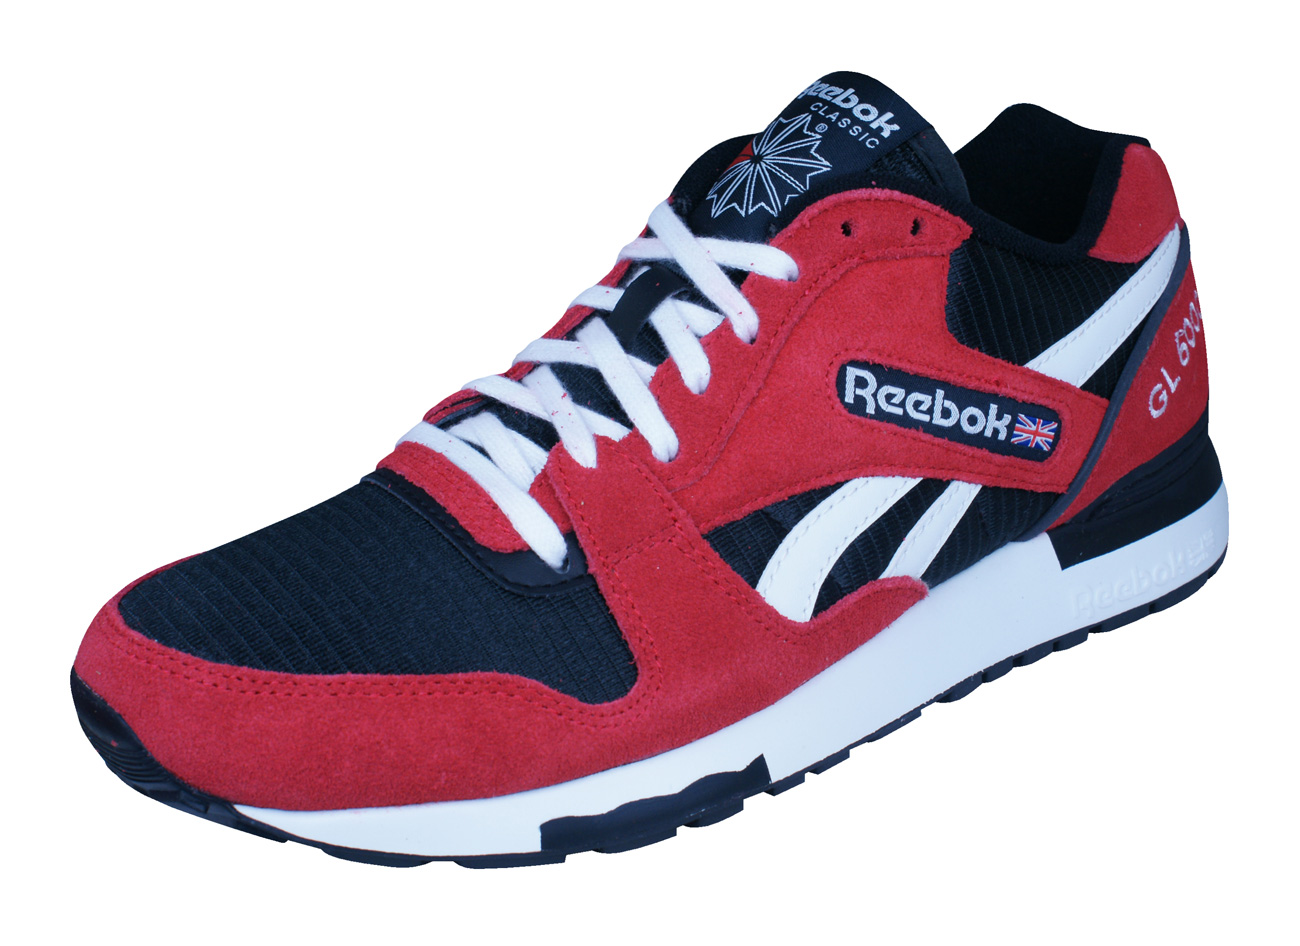 fec71649aa35 Reebok Classic GL 6000 Athletic Mens Trainers   Shoes - Red and Black